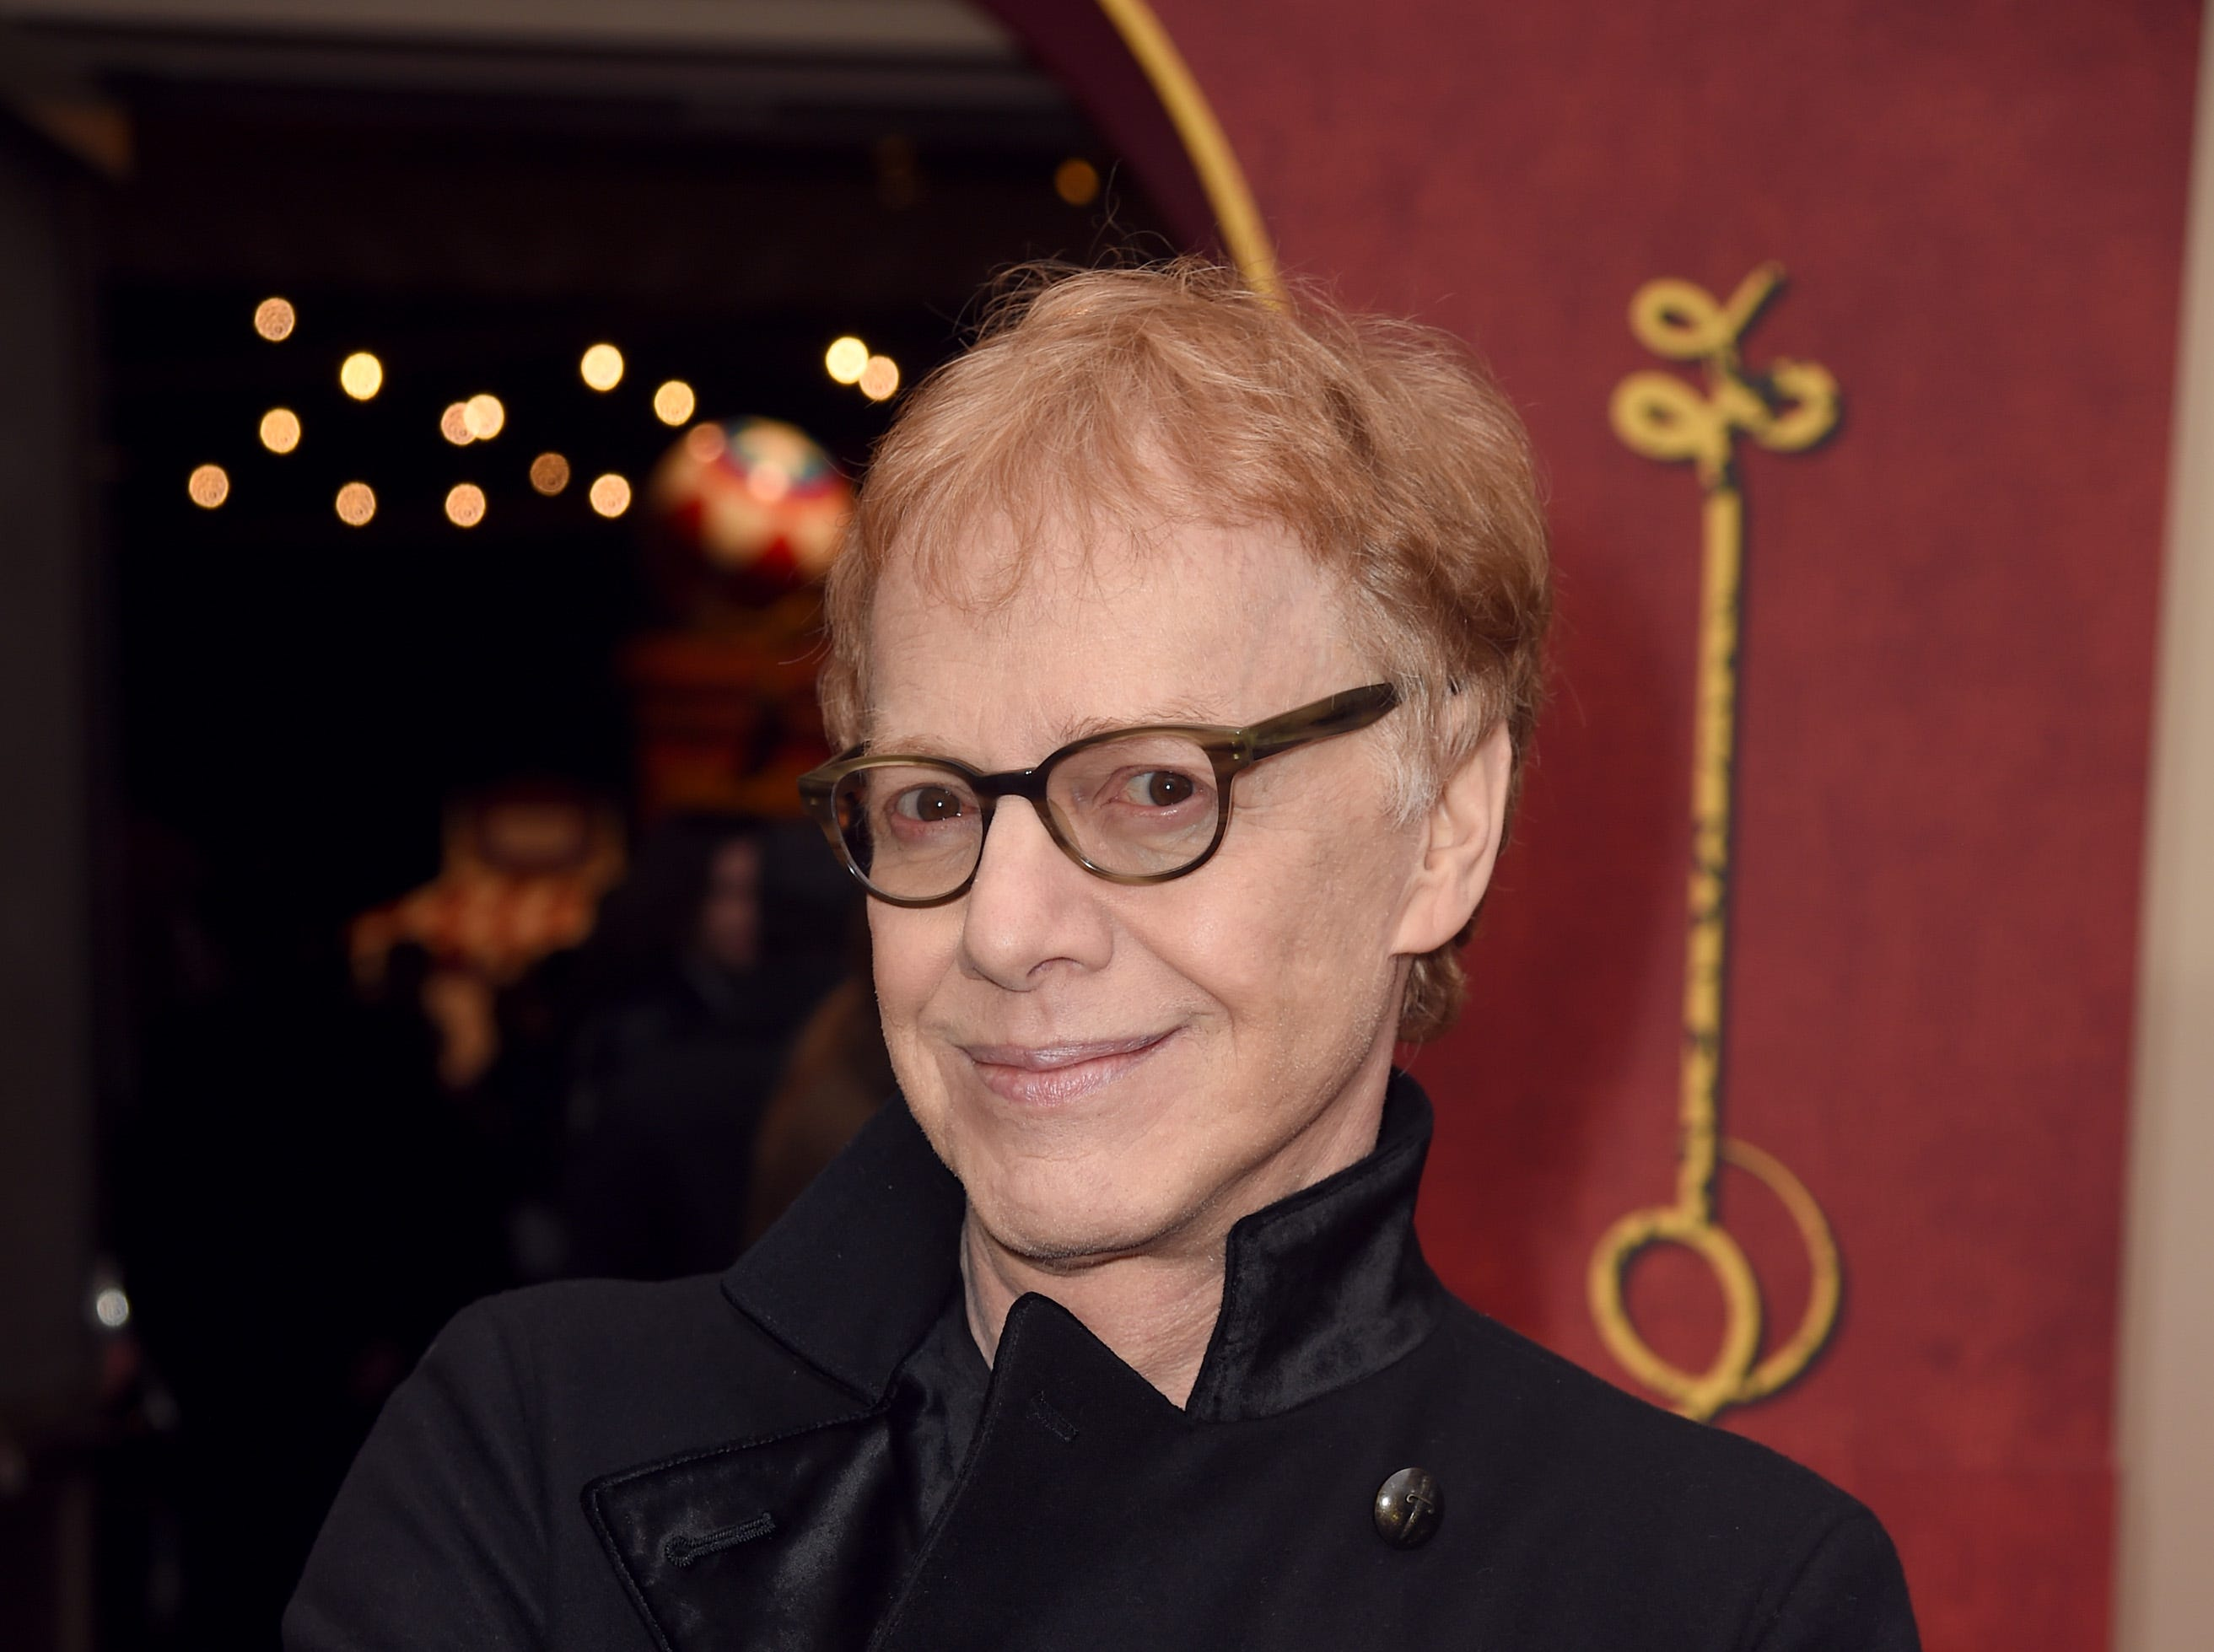 """LOS ANGELES, CALIFORNIA - MARCH 11: Danny Elfman attends the premiere of Disney's """"Dumbo"""" at El Capitan Theatre on March 11, 2019 in Los Angeles, California. (Photo by Kevin Winter/Getty Images) ORG XMIT: 775305574 ORIG FILE ID: 1135209344"""